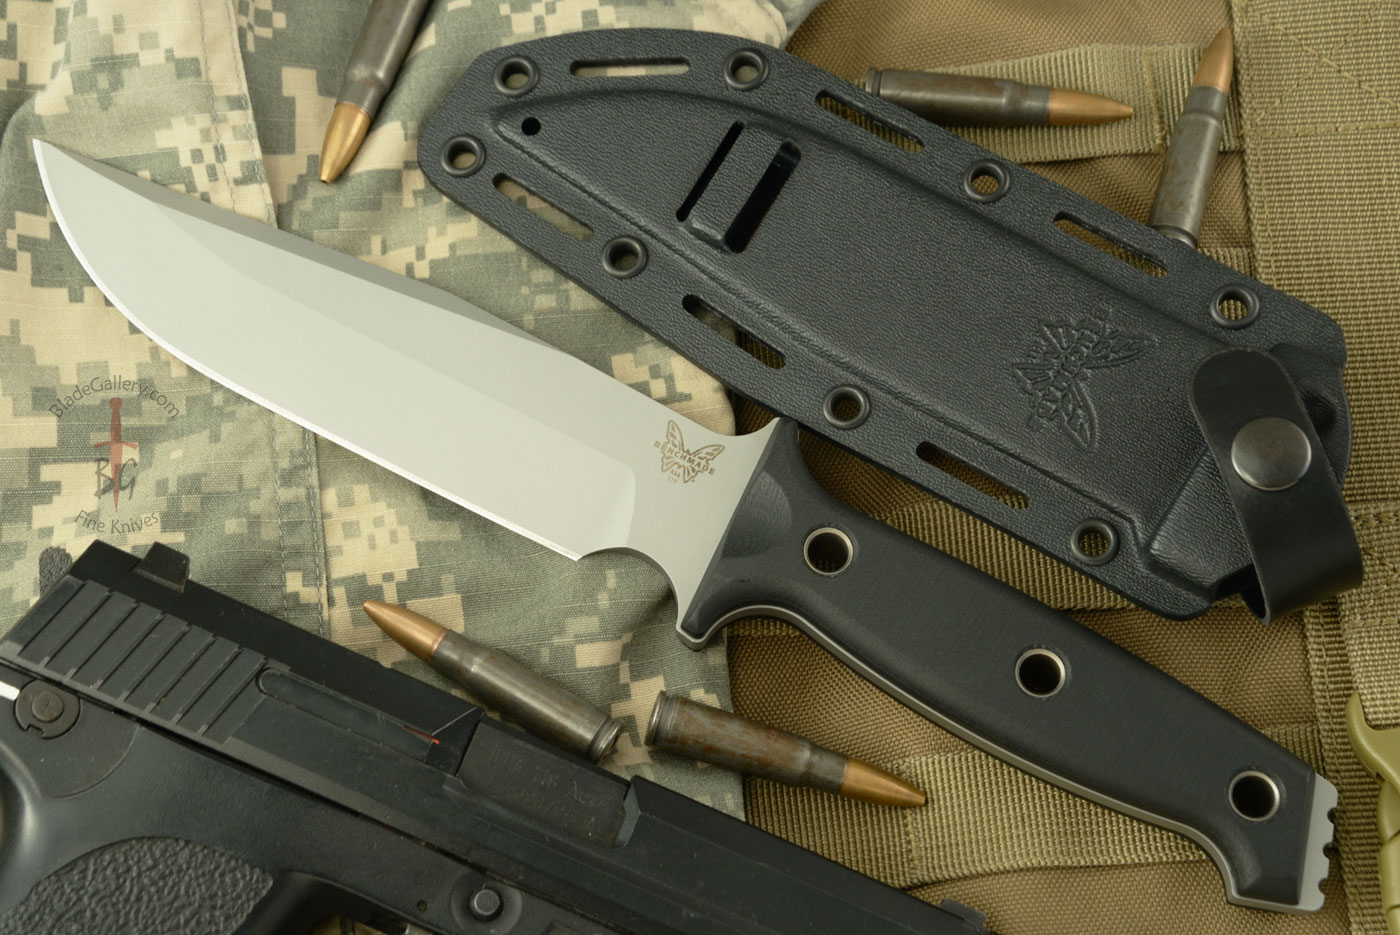 Arvensis (119) with Black G-10